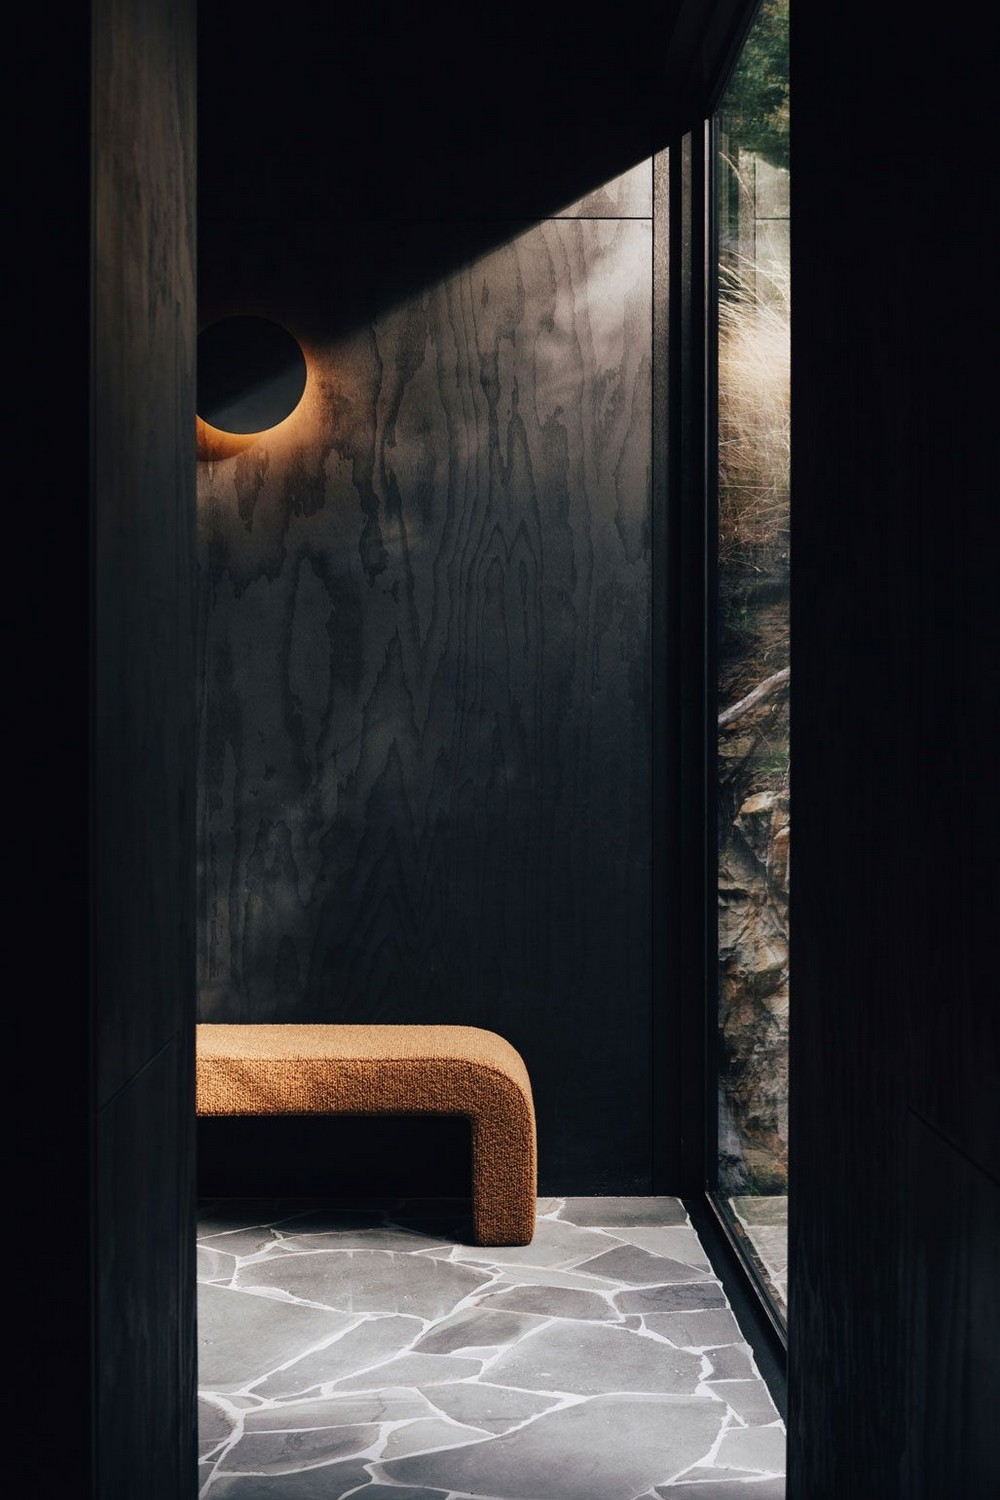 Contemplate a Series of Entryway Decor Ideas for a Bold Aesthetic 4 entryway decor Contemplate a Series of Entryway Decor Ideas for a Bold Aesthetic Contemplate a Series of Entryway Decor Ideas for a Bold Aesthetic 4